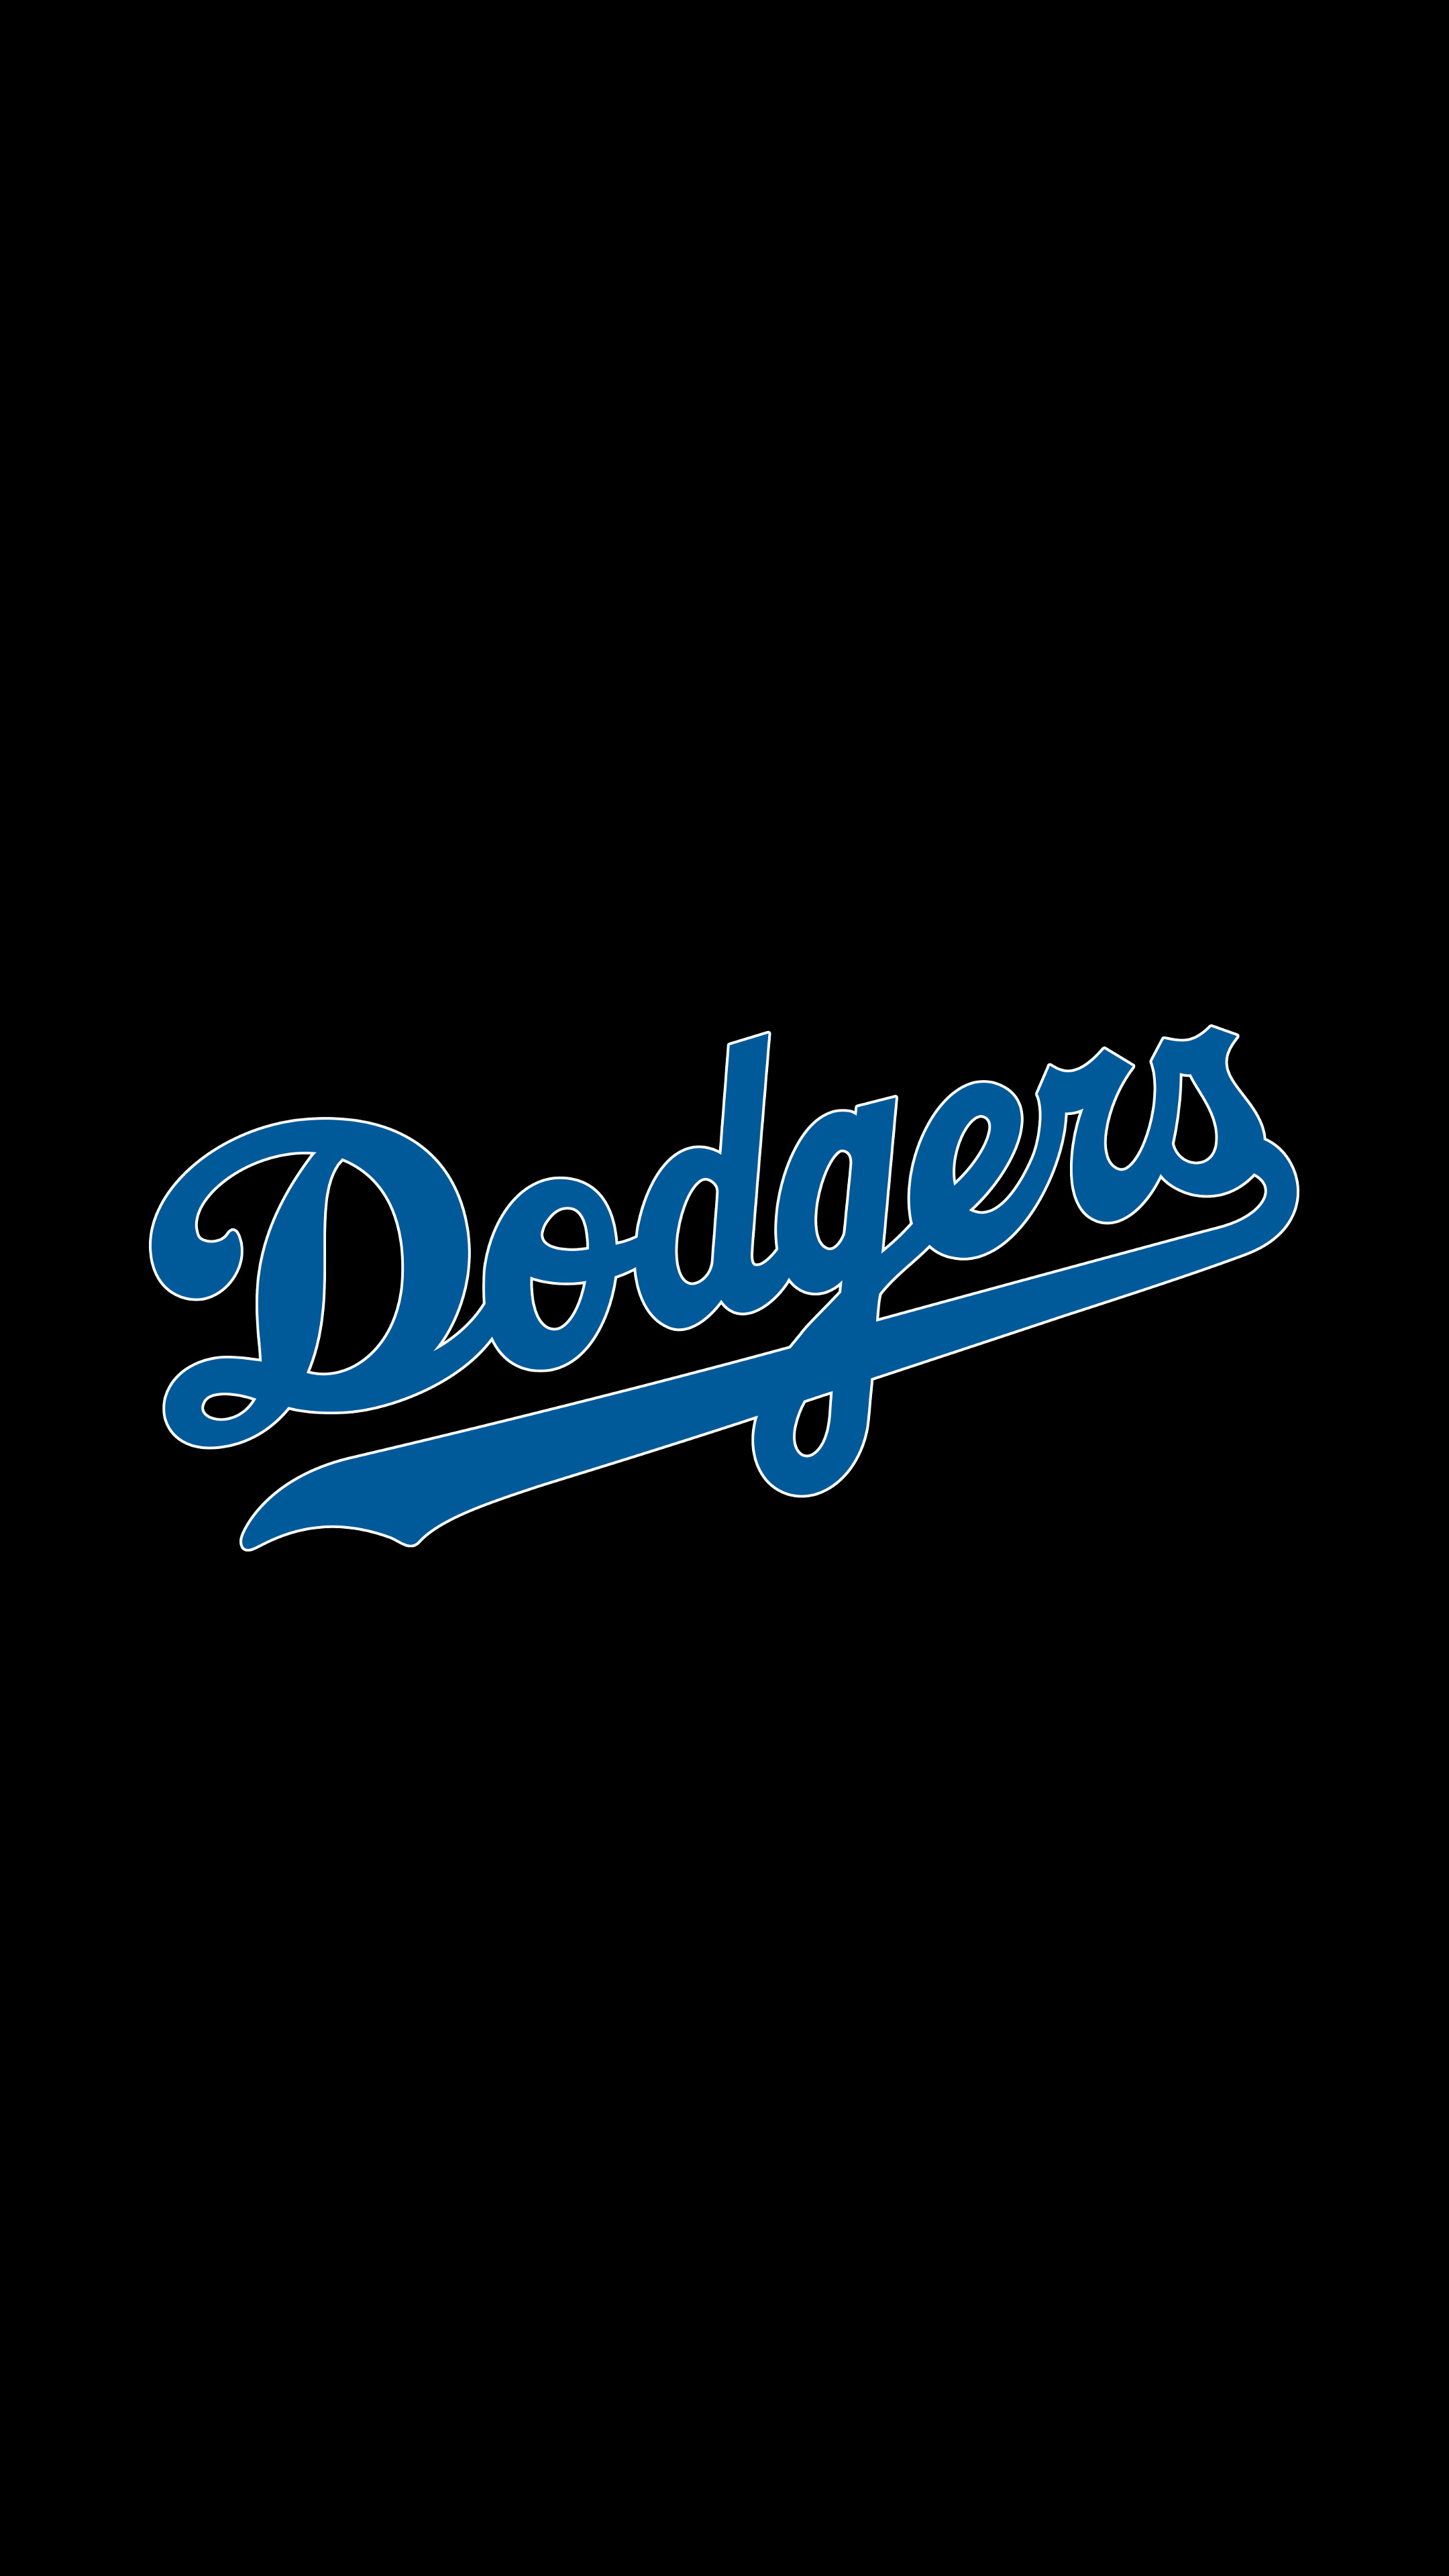 Los Angeles Dodgers Wallpaper For Iphone Posted By Michelle Mercado